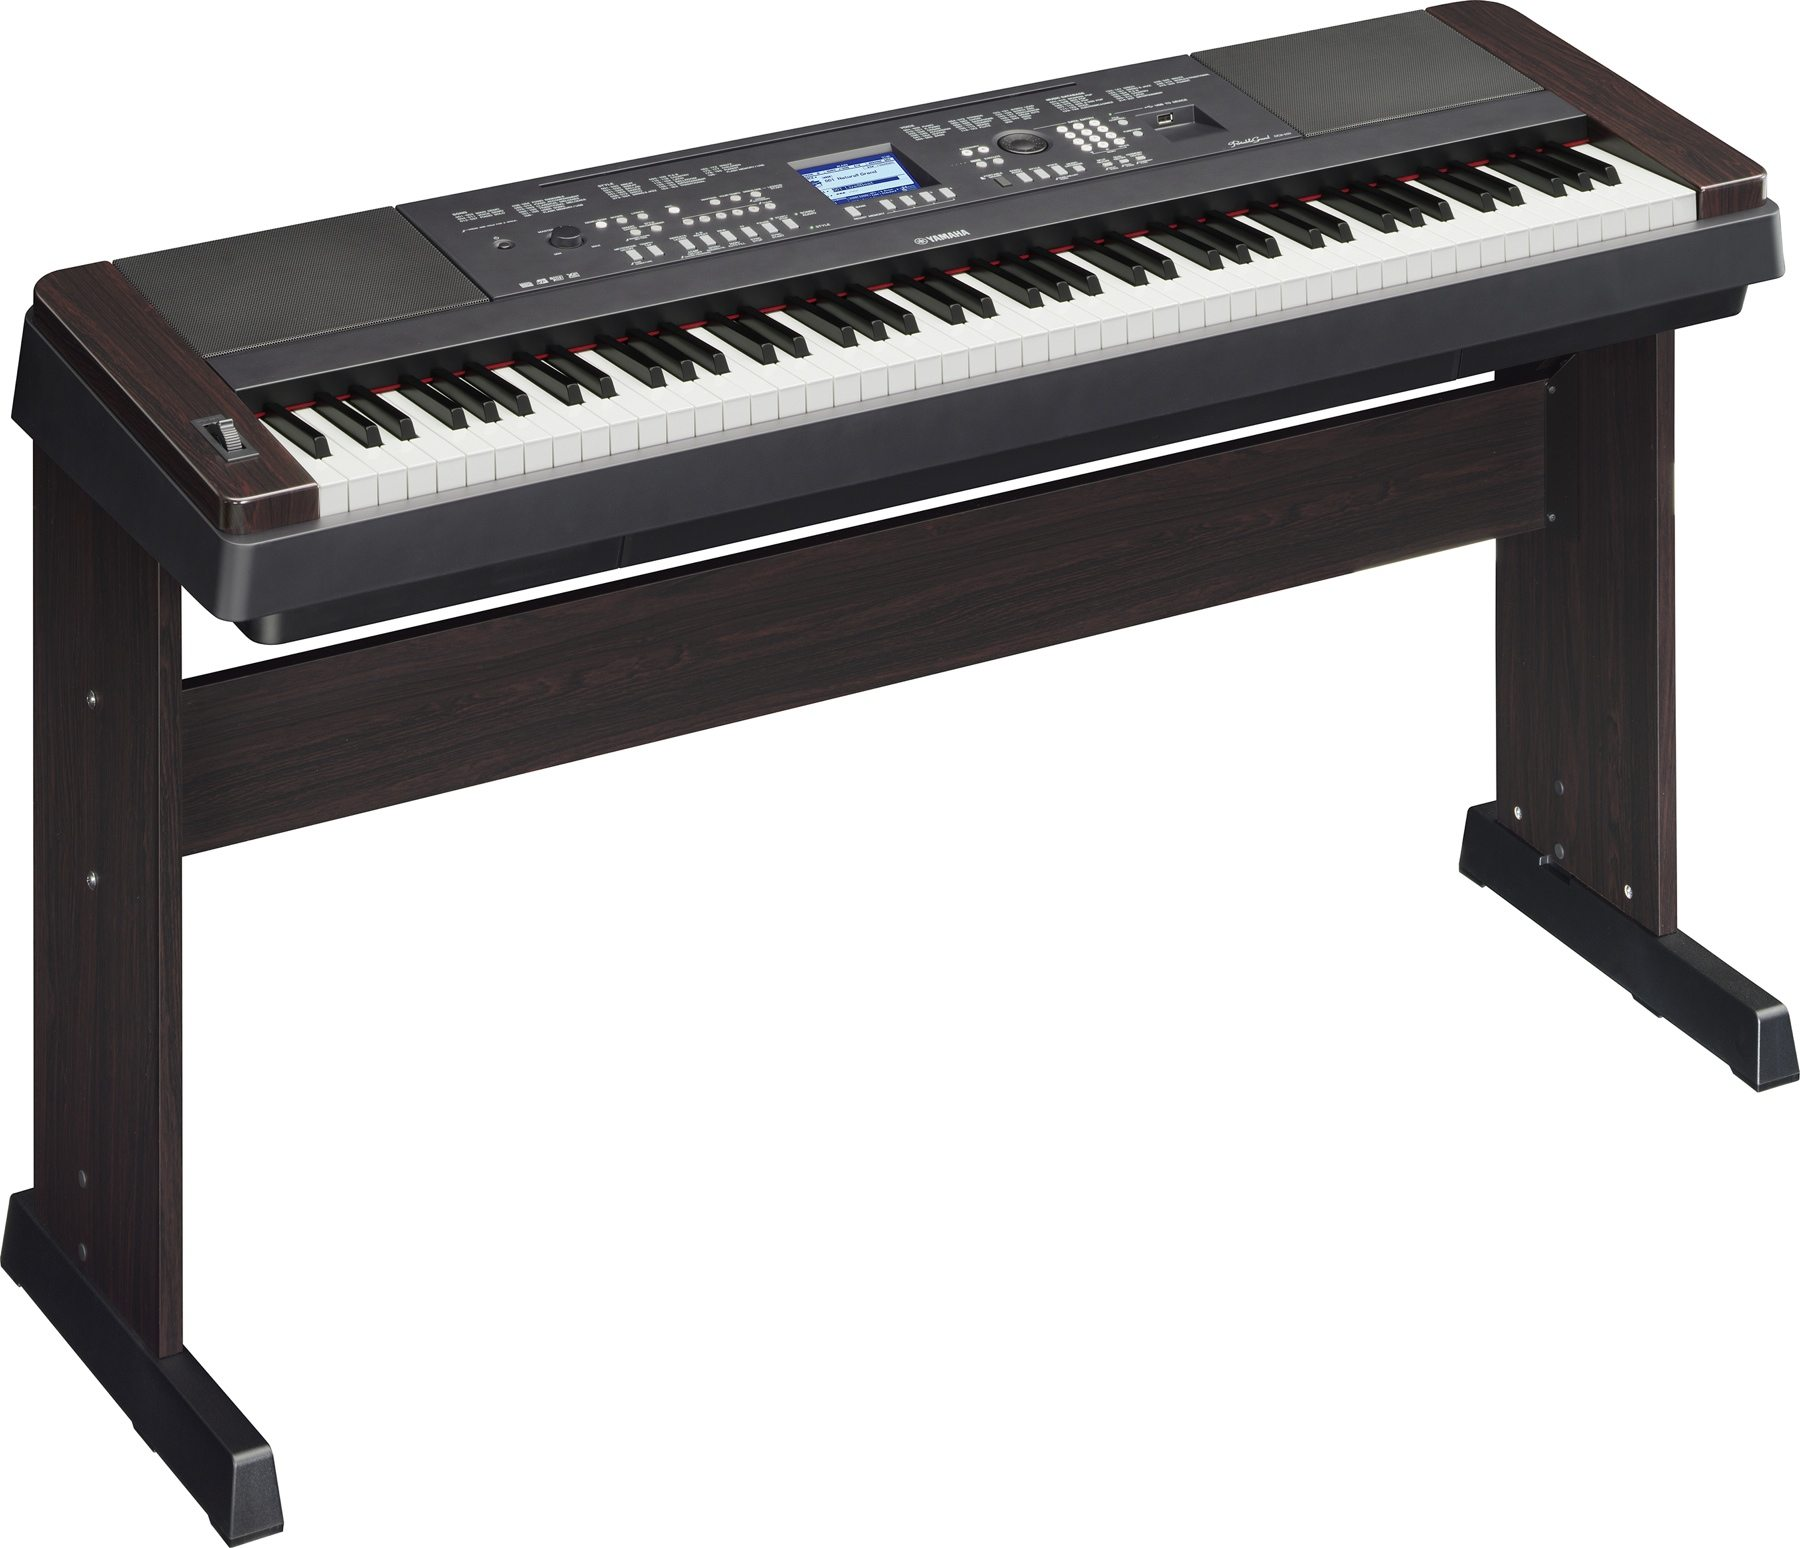 yamaha dgx 650 keyboard styles music